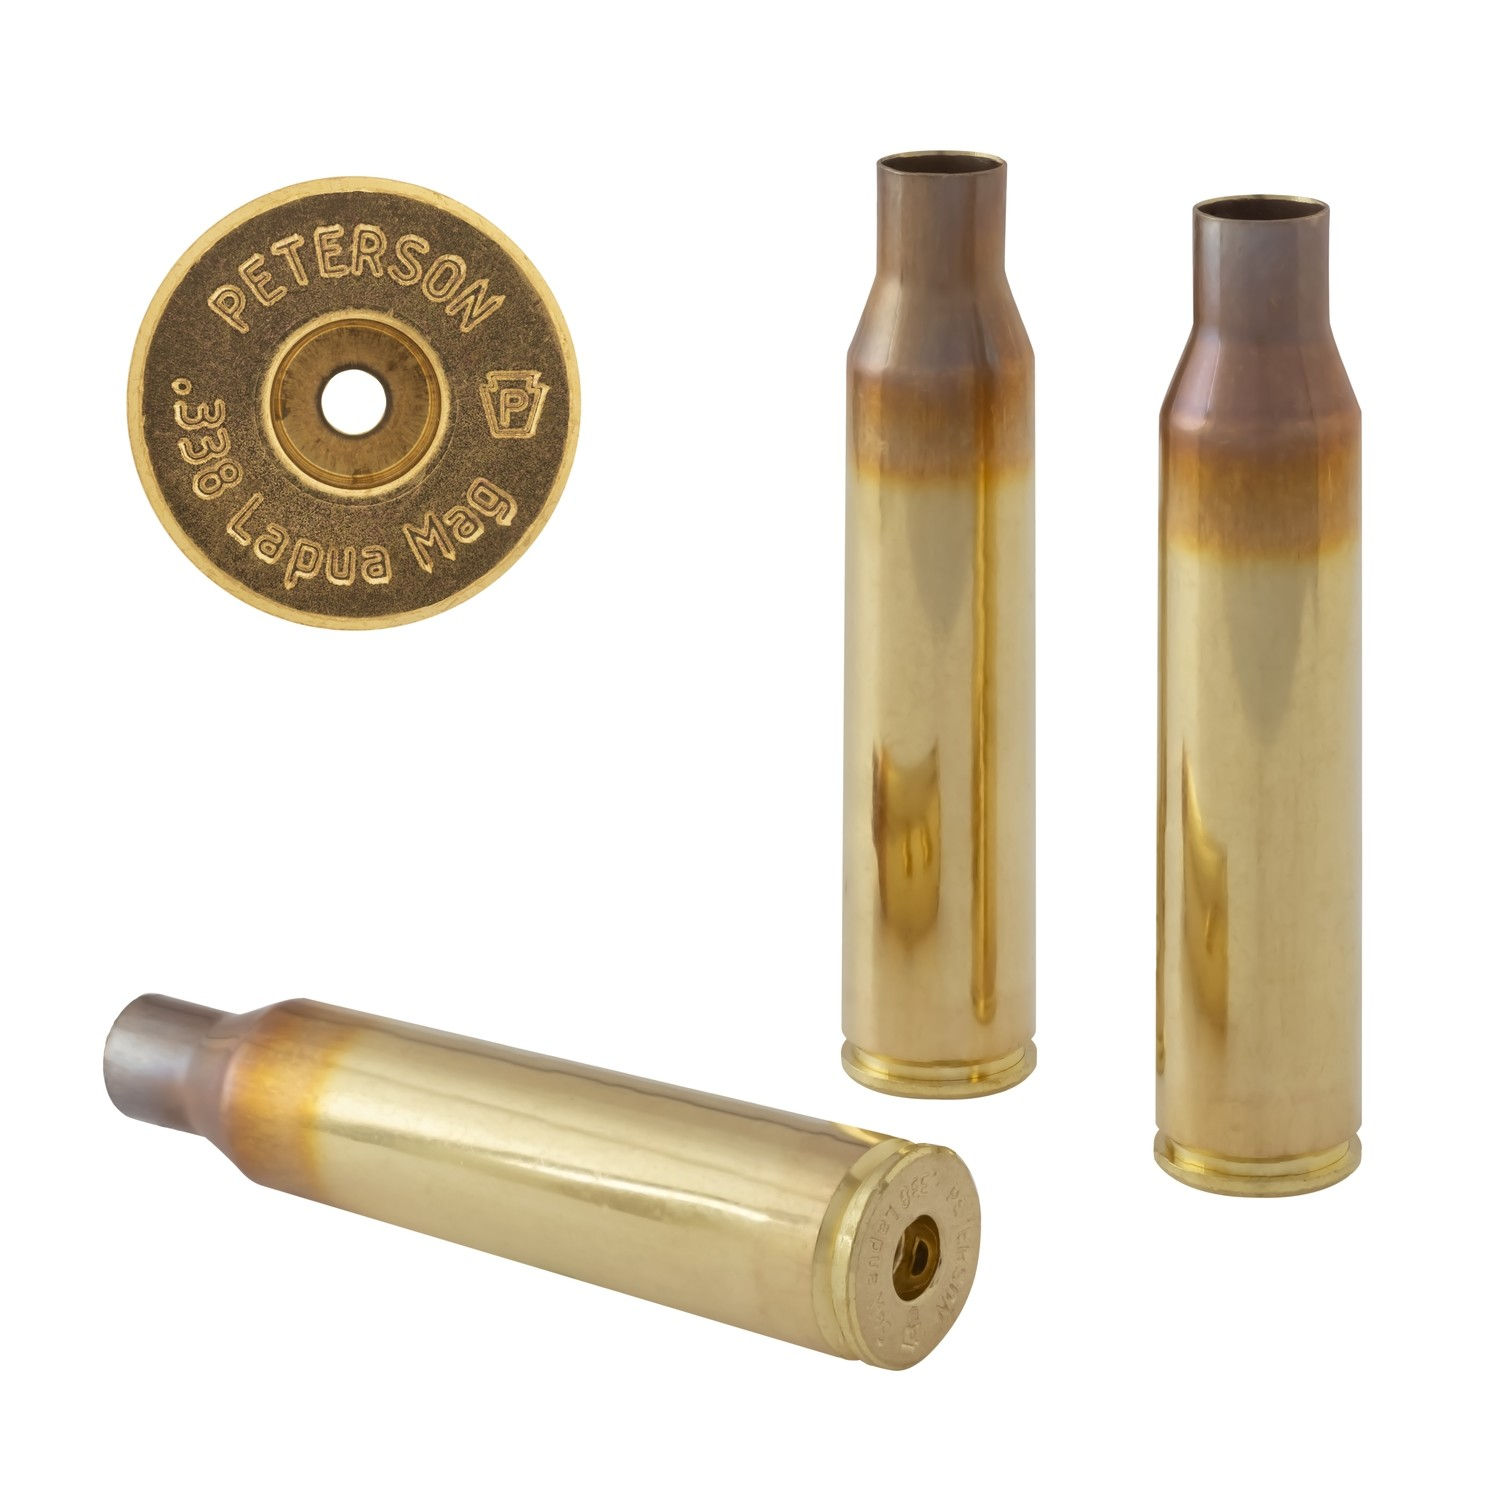 Peterson .338 Lapua Mag Select - Box of 50 Brass Rifle Casings